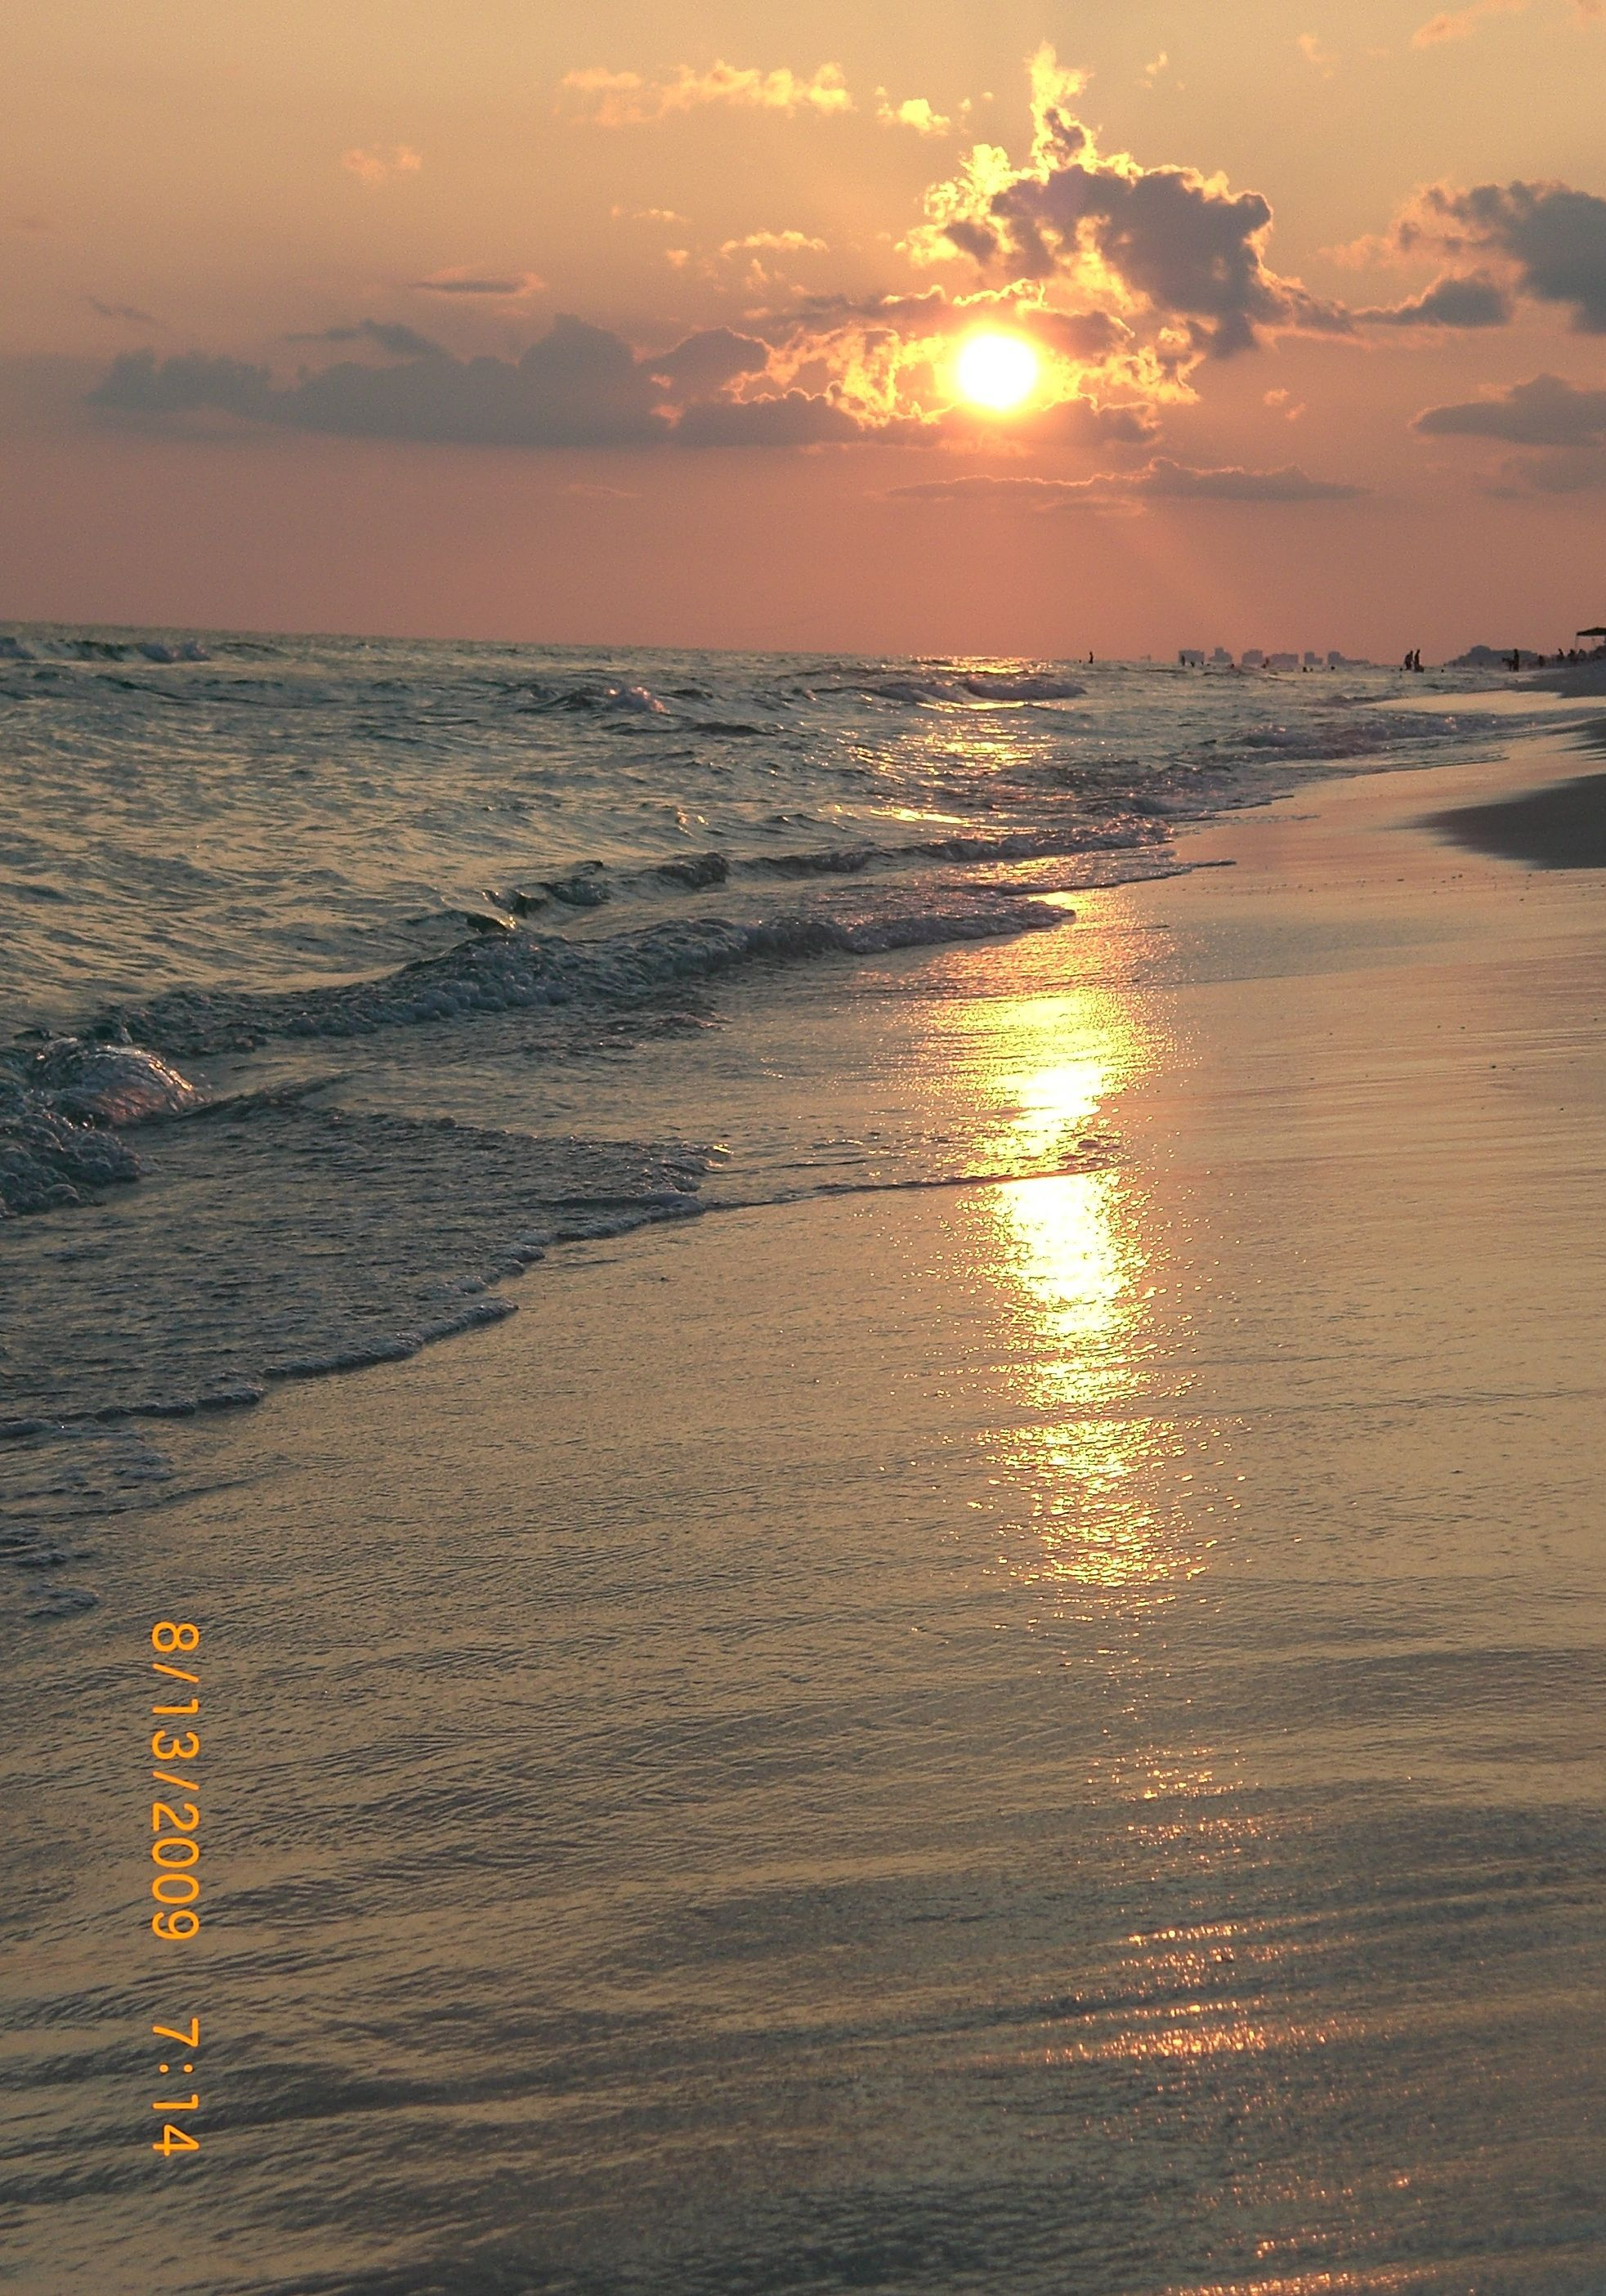 Quotes Sunsets Beach Baeefdcaabbcd